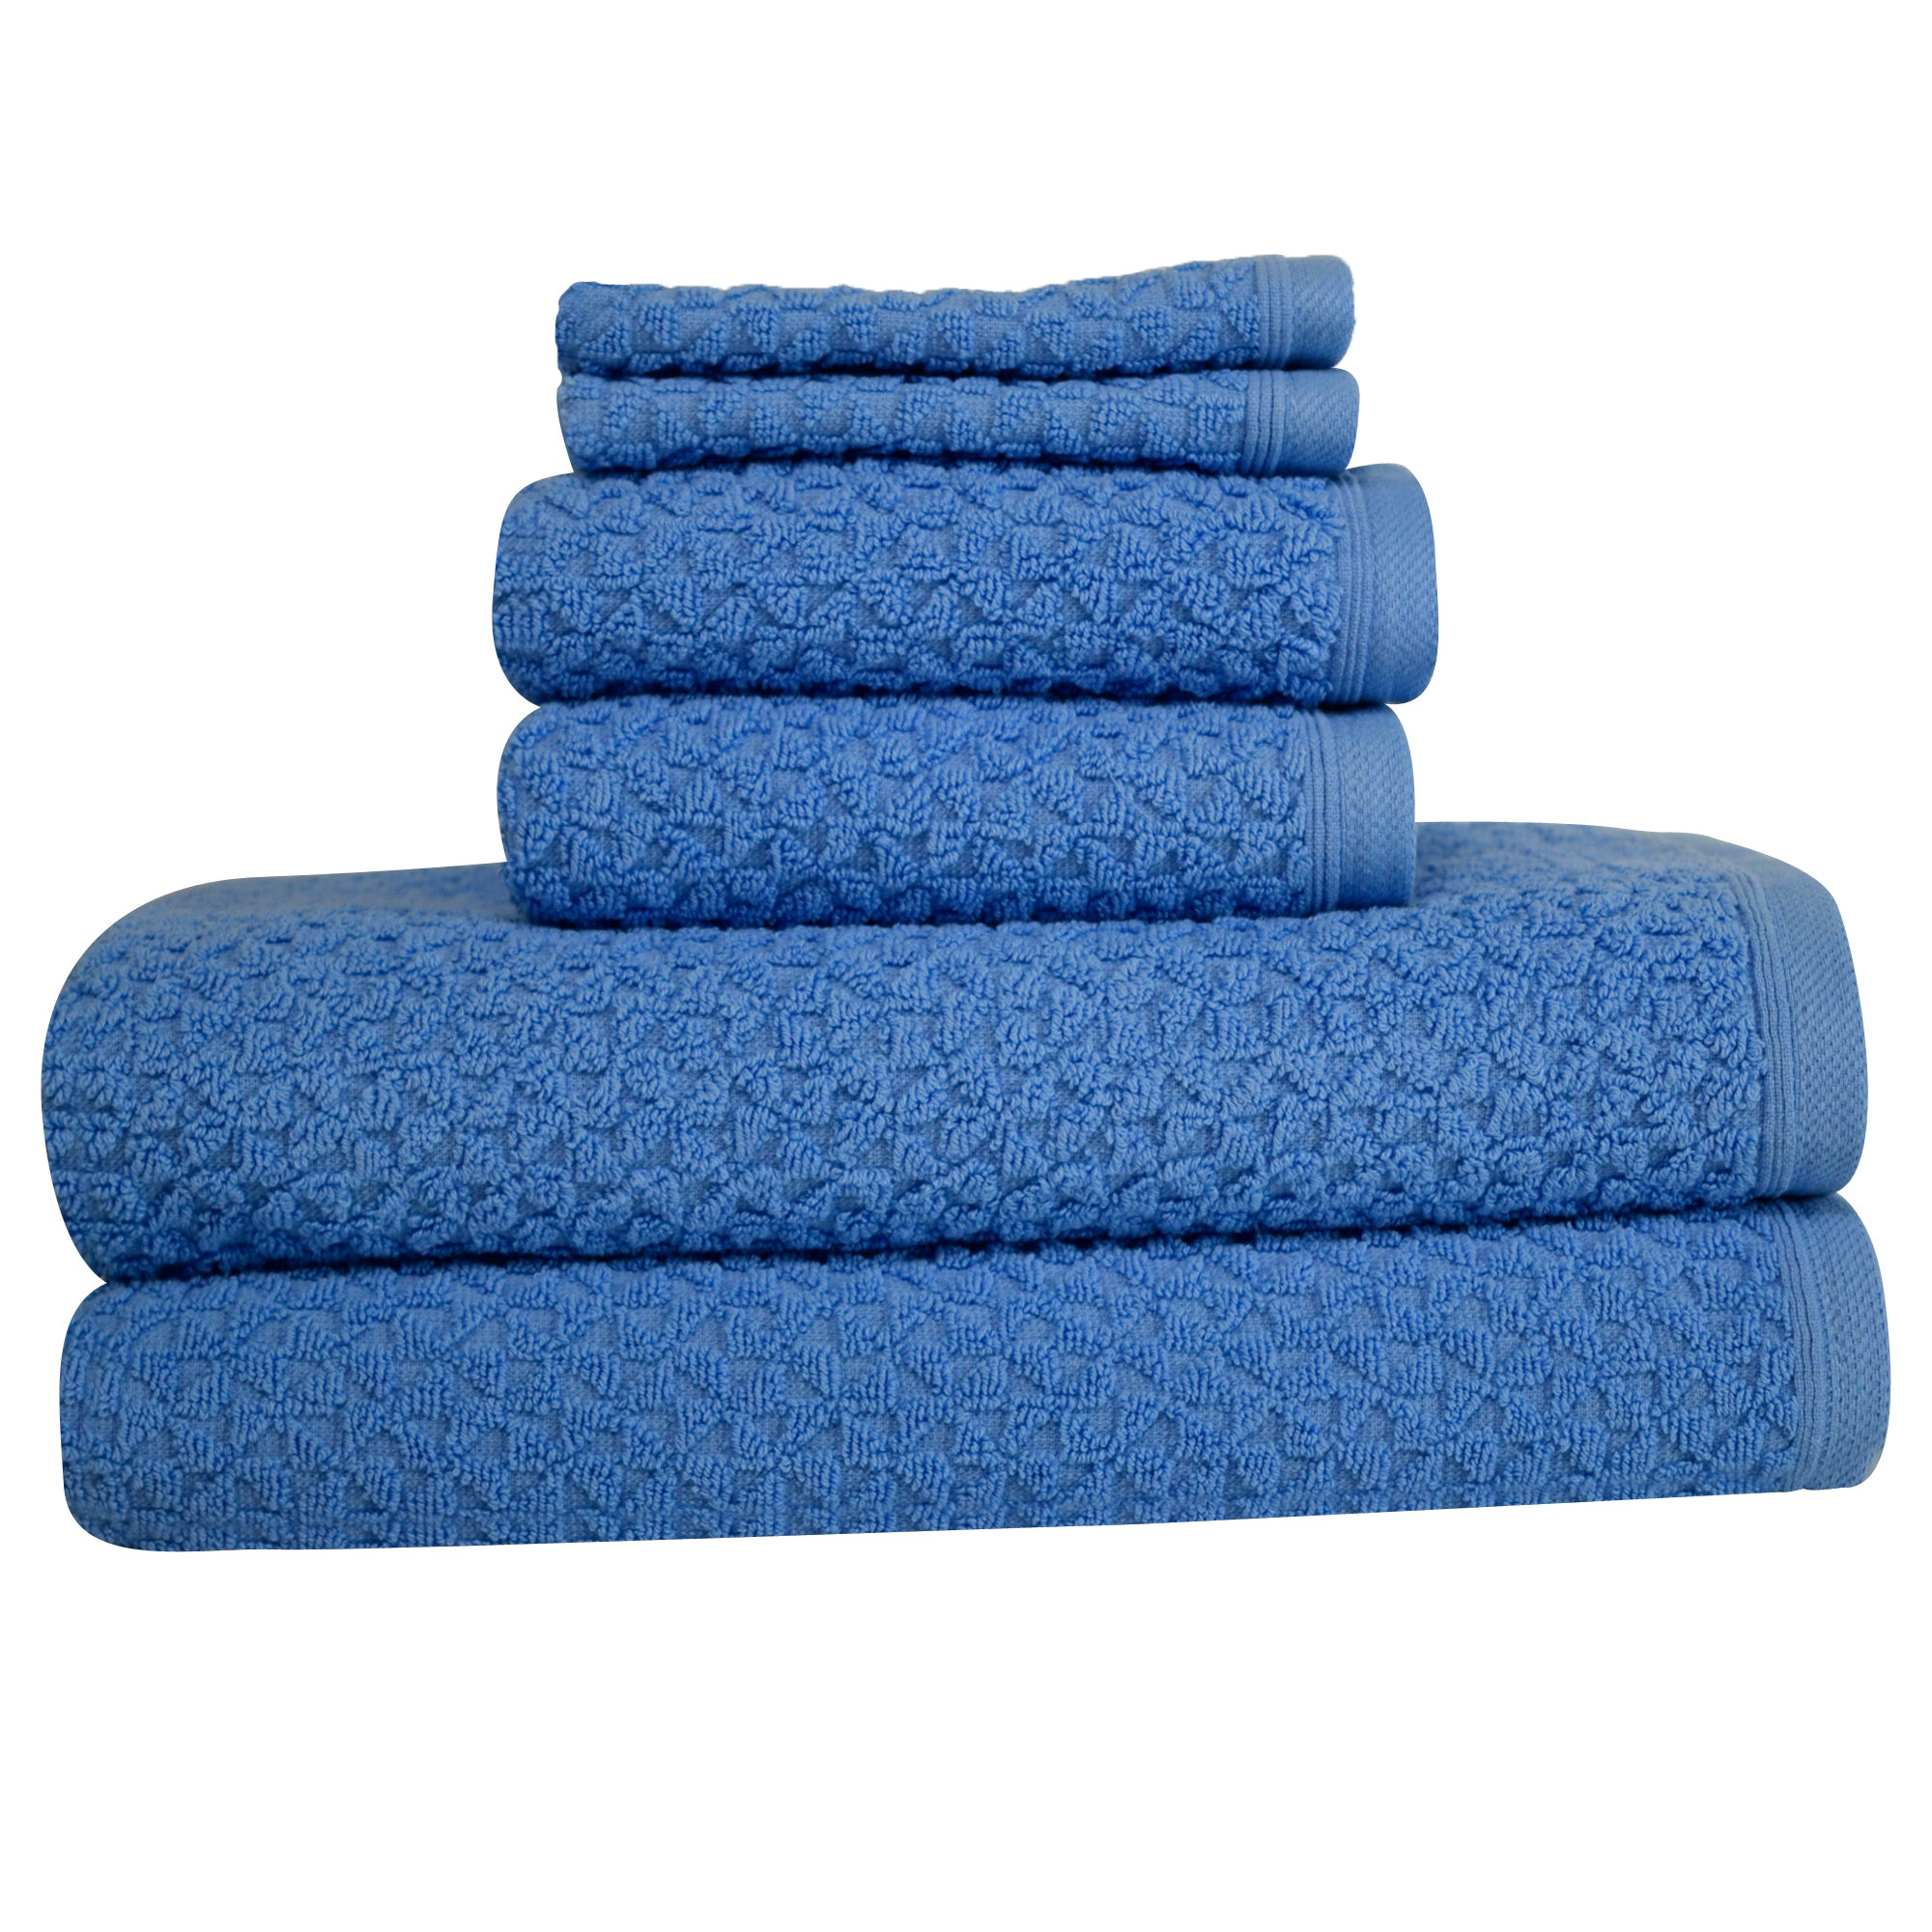 Hardwick Jacquard Turkish Cotton Towel Set of 6 (10 Sets)